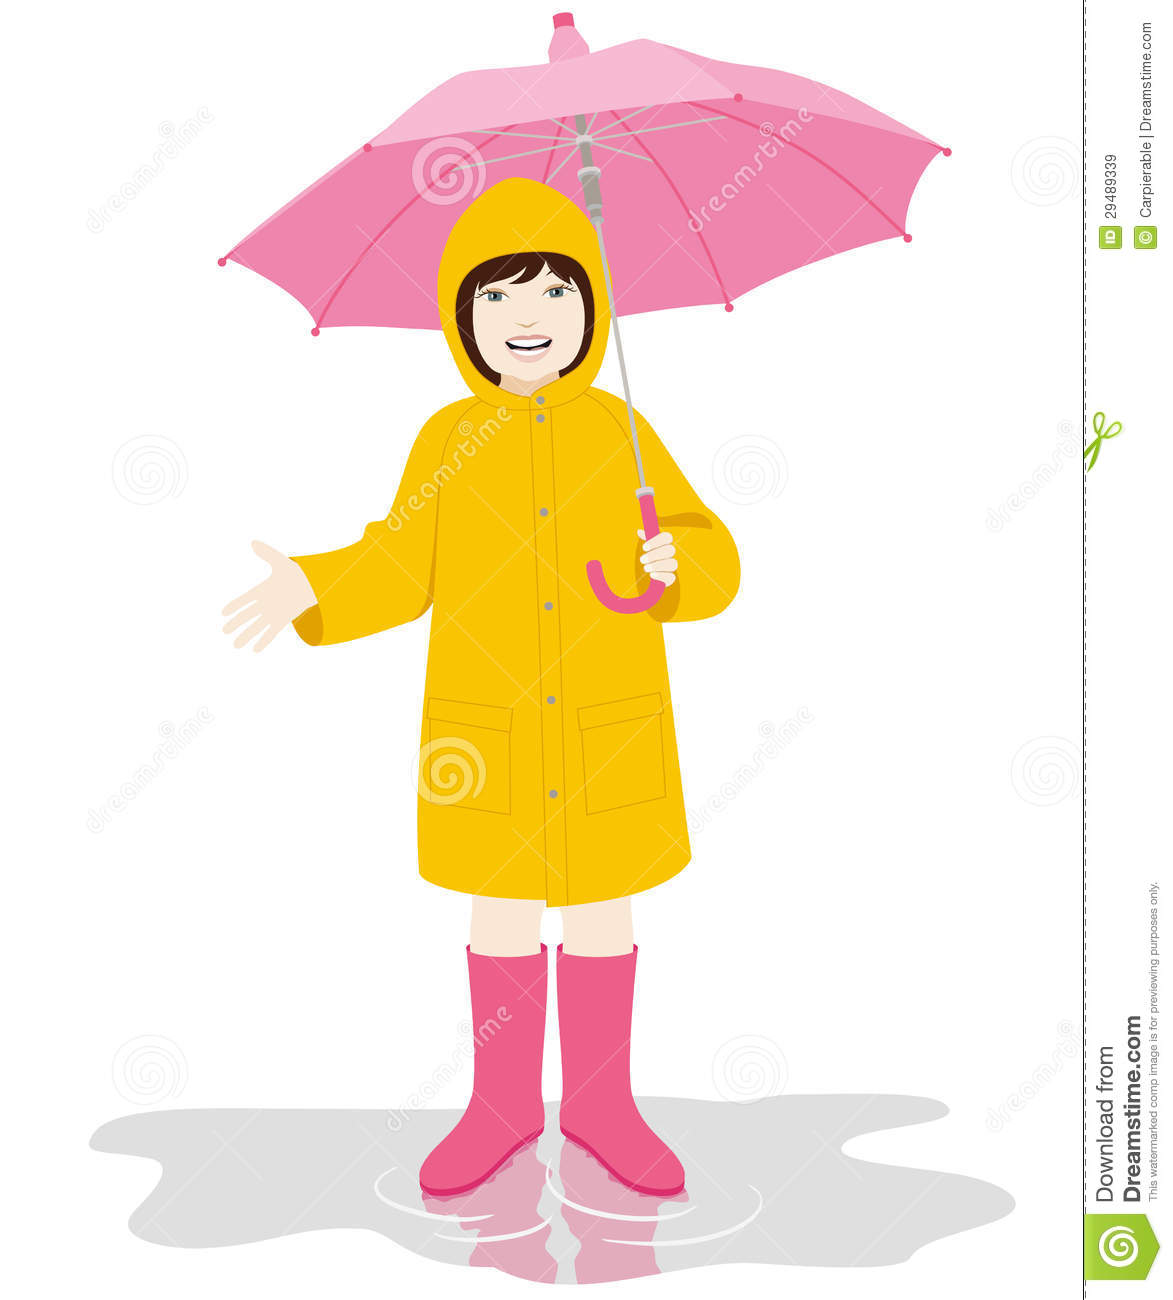 Yellow Raincoat Clipart And Yellow Raincoat On The